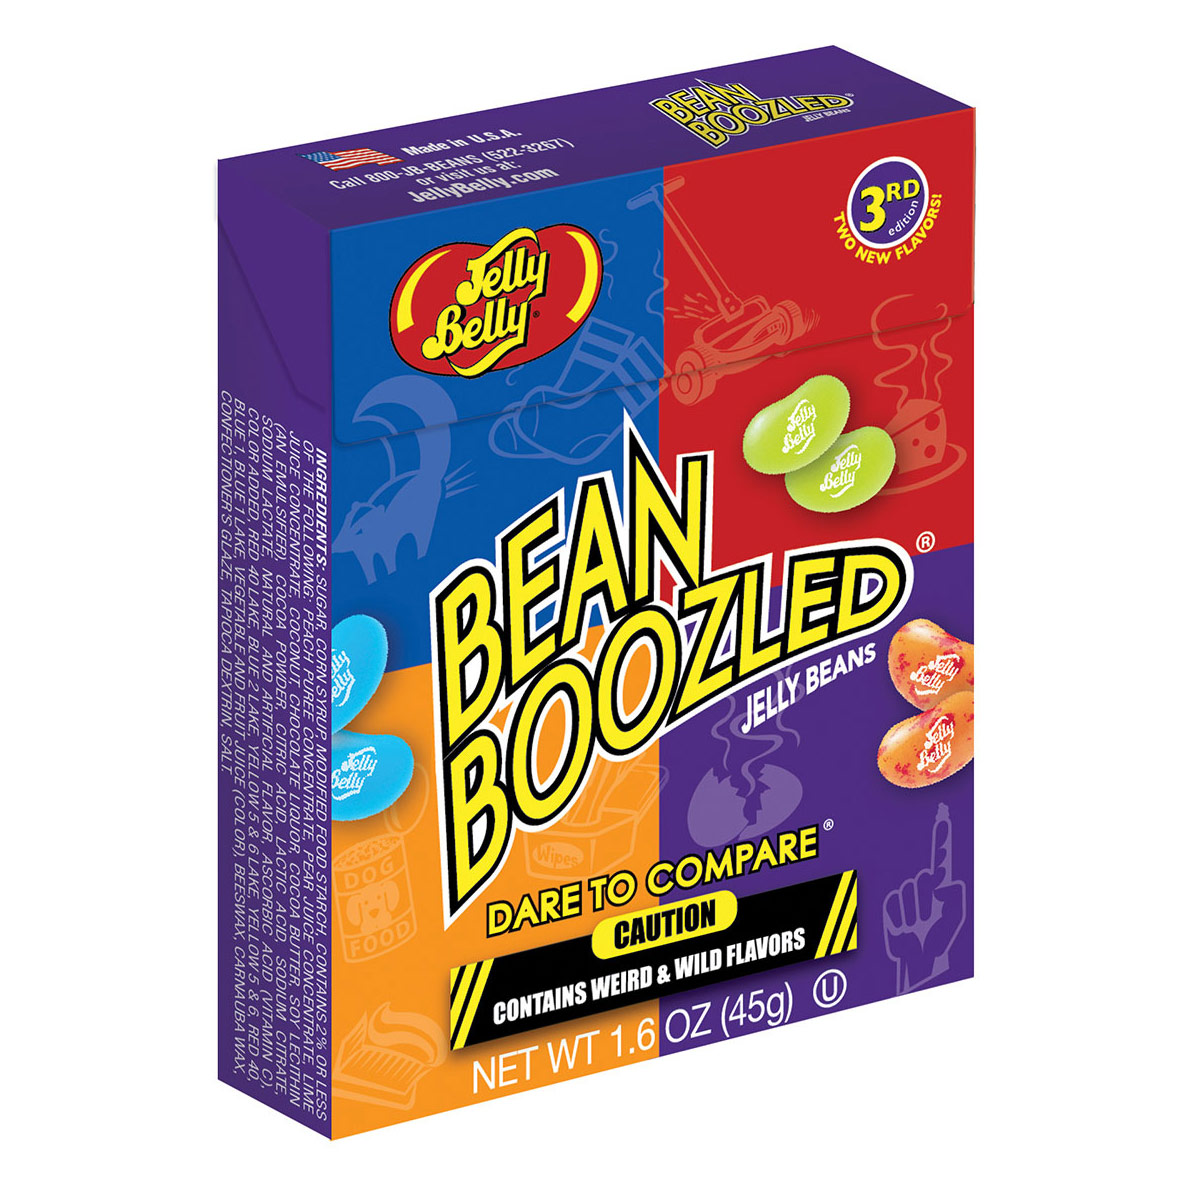 beanboozled.jpeg